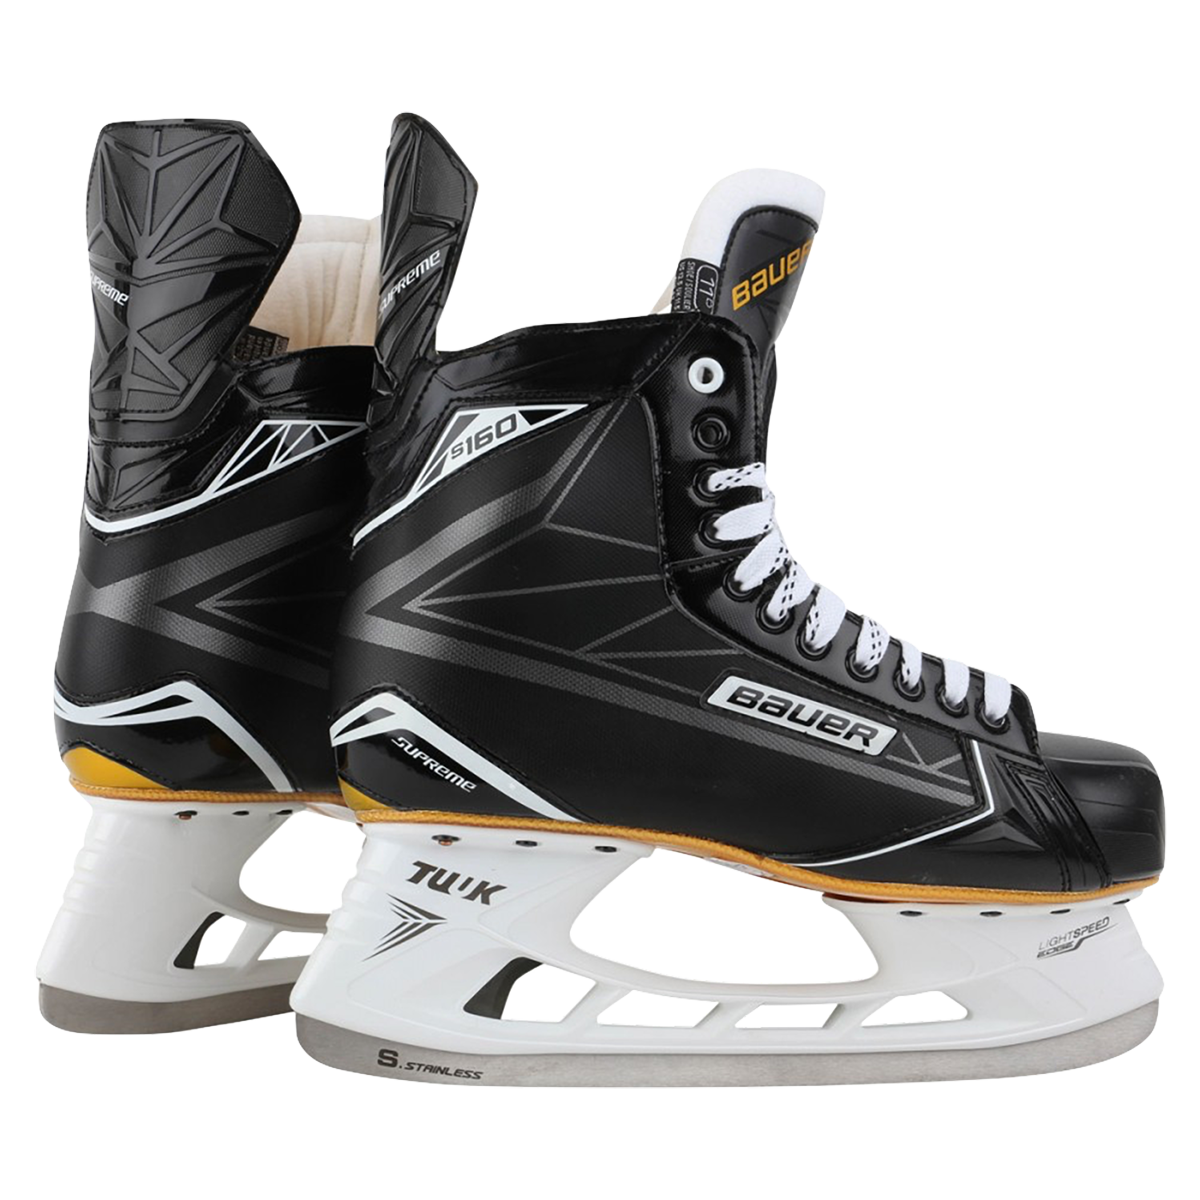 4dd9cb6d1f3 bauer-supreme-s160-ice-hockey-skate-senior-skate-size-bauer-size-9.5-uk-size -10-eu-size-45-width-ee-12551-p.png